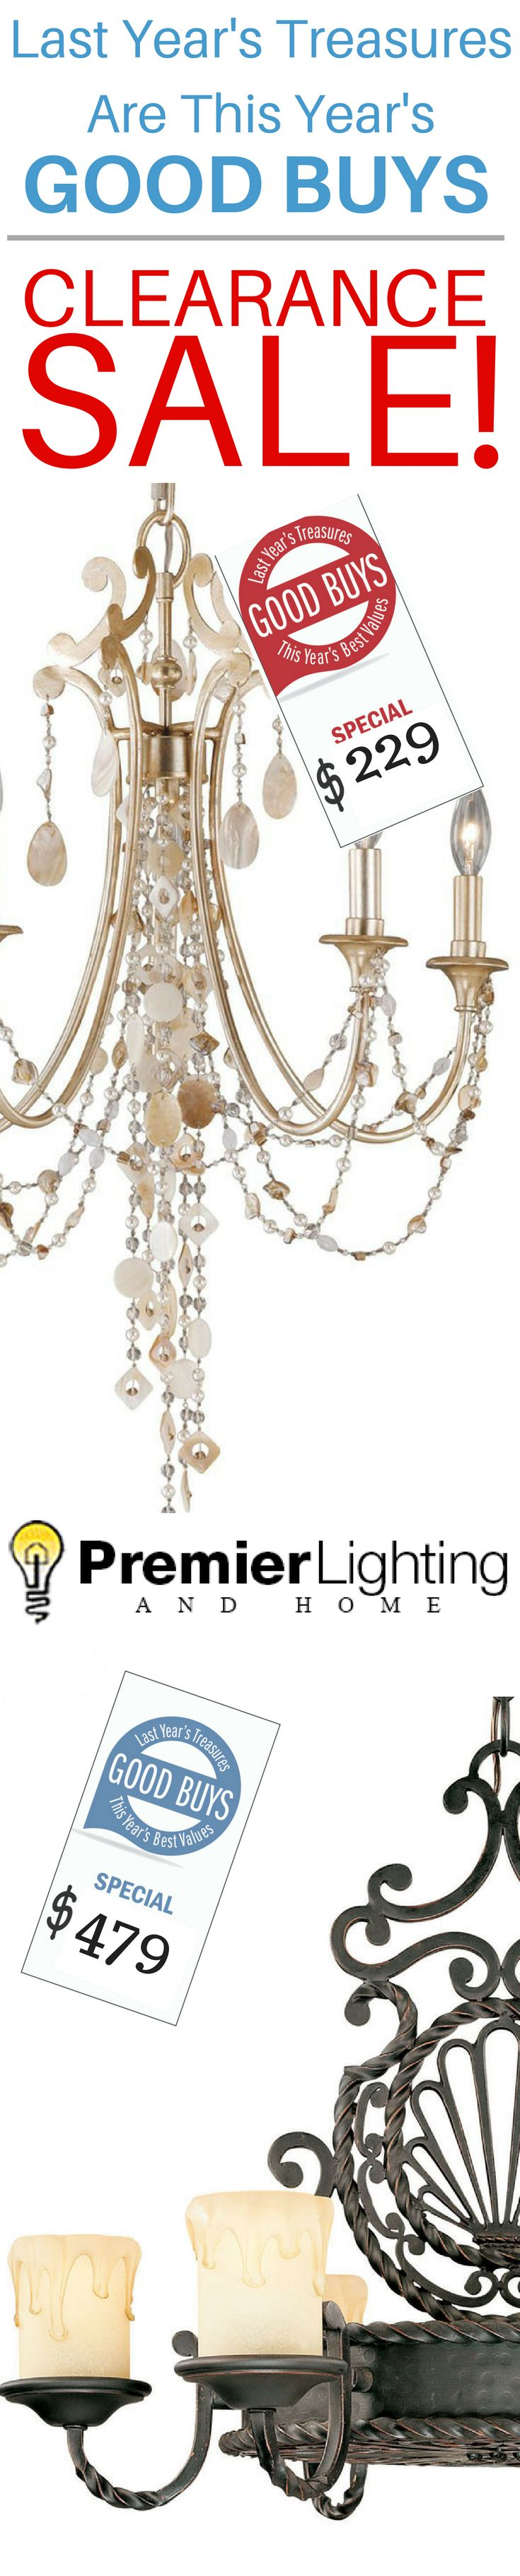 Get new lighting fixtures for the #holidays!  Stop in today for #lighting at #clearance prices!  Showroom Location  4300 Ashe Road # 118 Bakersfield, CA 93313 (661) 835-8500   Showroom Hours Open: Tues - Sat 10am-5pm Closed: Sun - Mon   #homedecor #decor #lighting #lightfixture